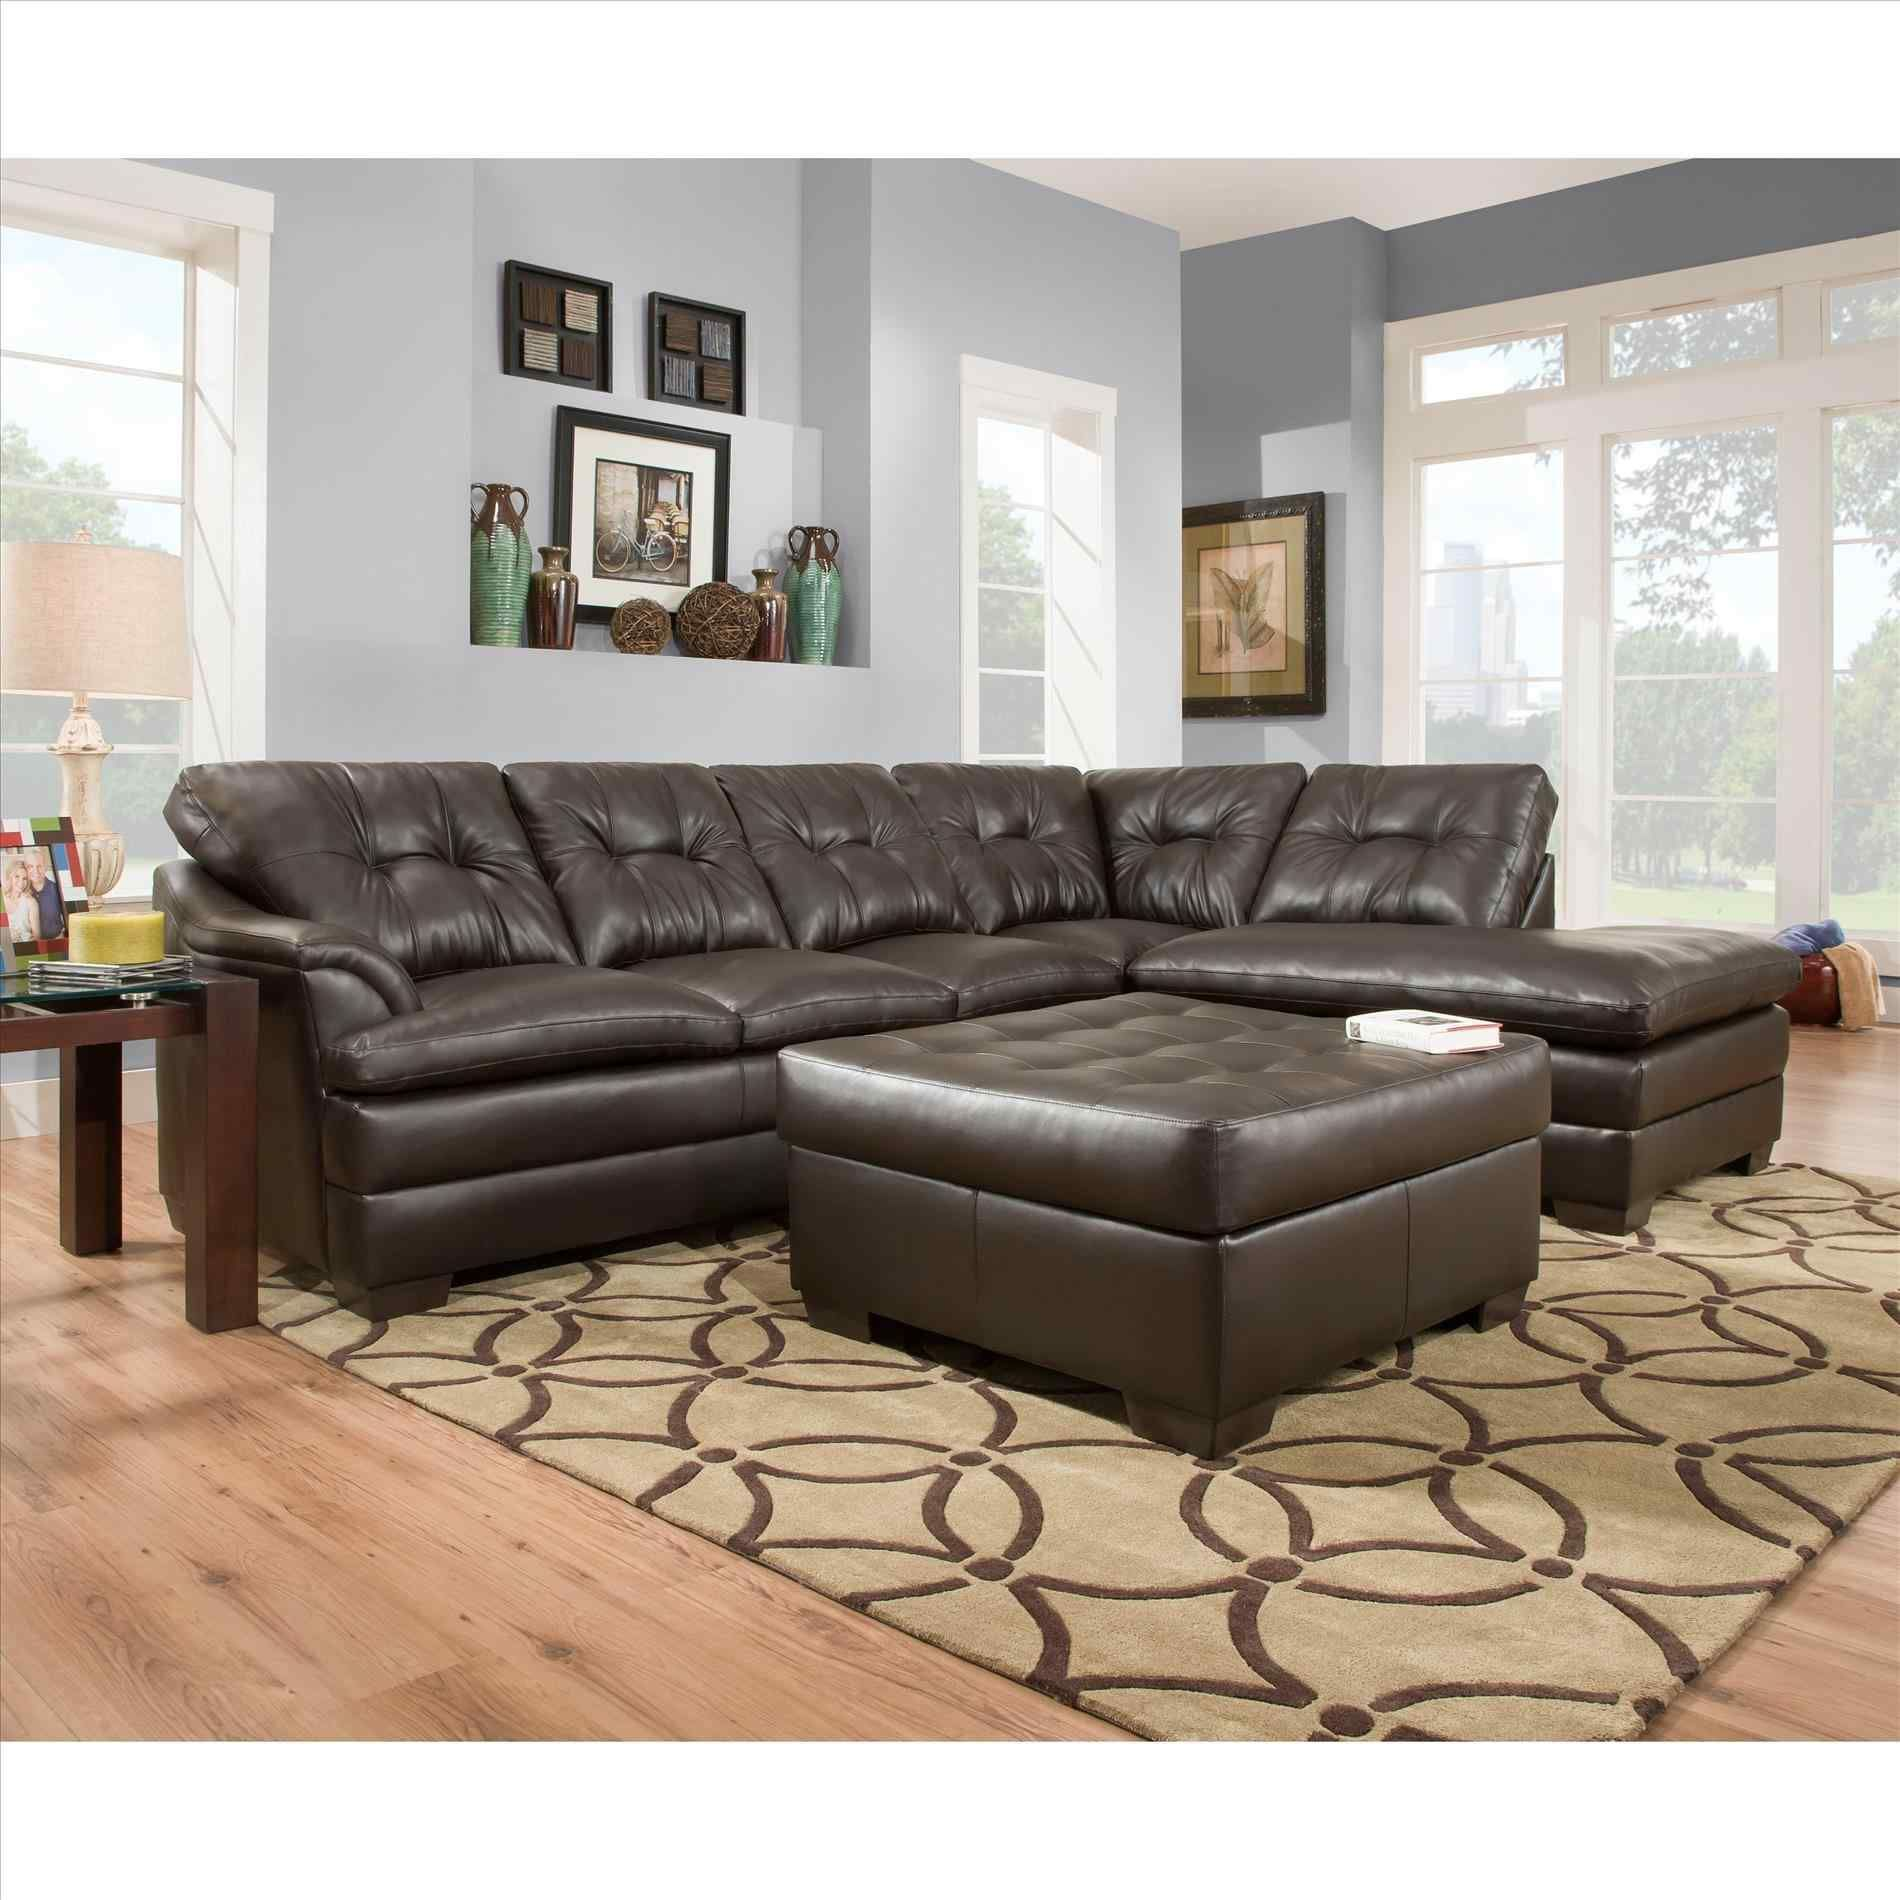 Sectional Sofa Reviews Run Upholstery Daisy U Wayfair Microfiber  ~ Simmons Leather Sofa Review